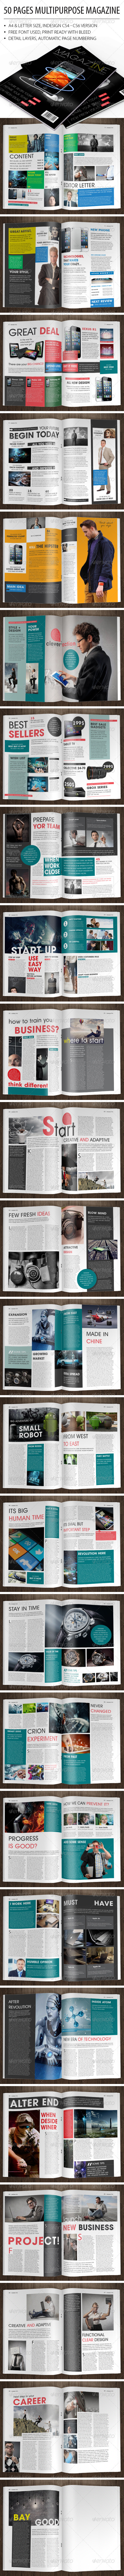 GraphicRiver A4 Letter 50 pages Magazine Template 6492779